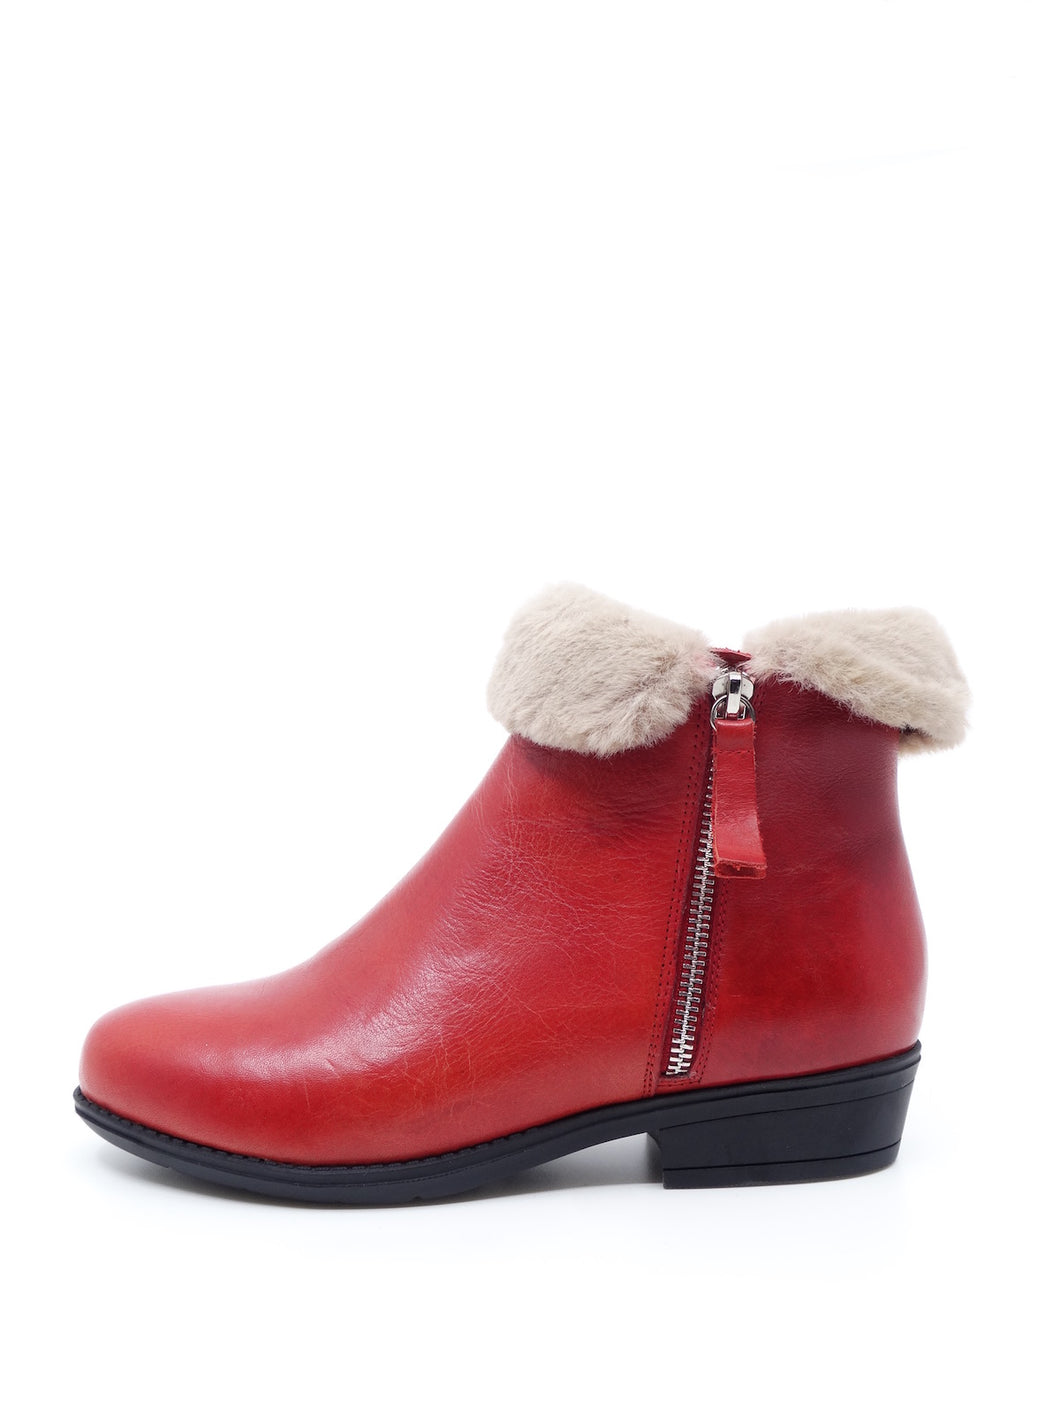 Django & Juliette Roadter Red Leather Fur